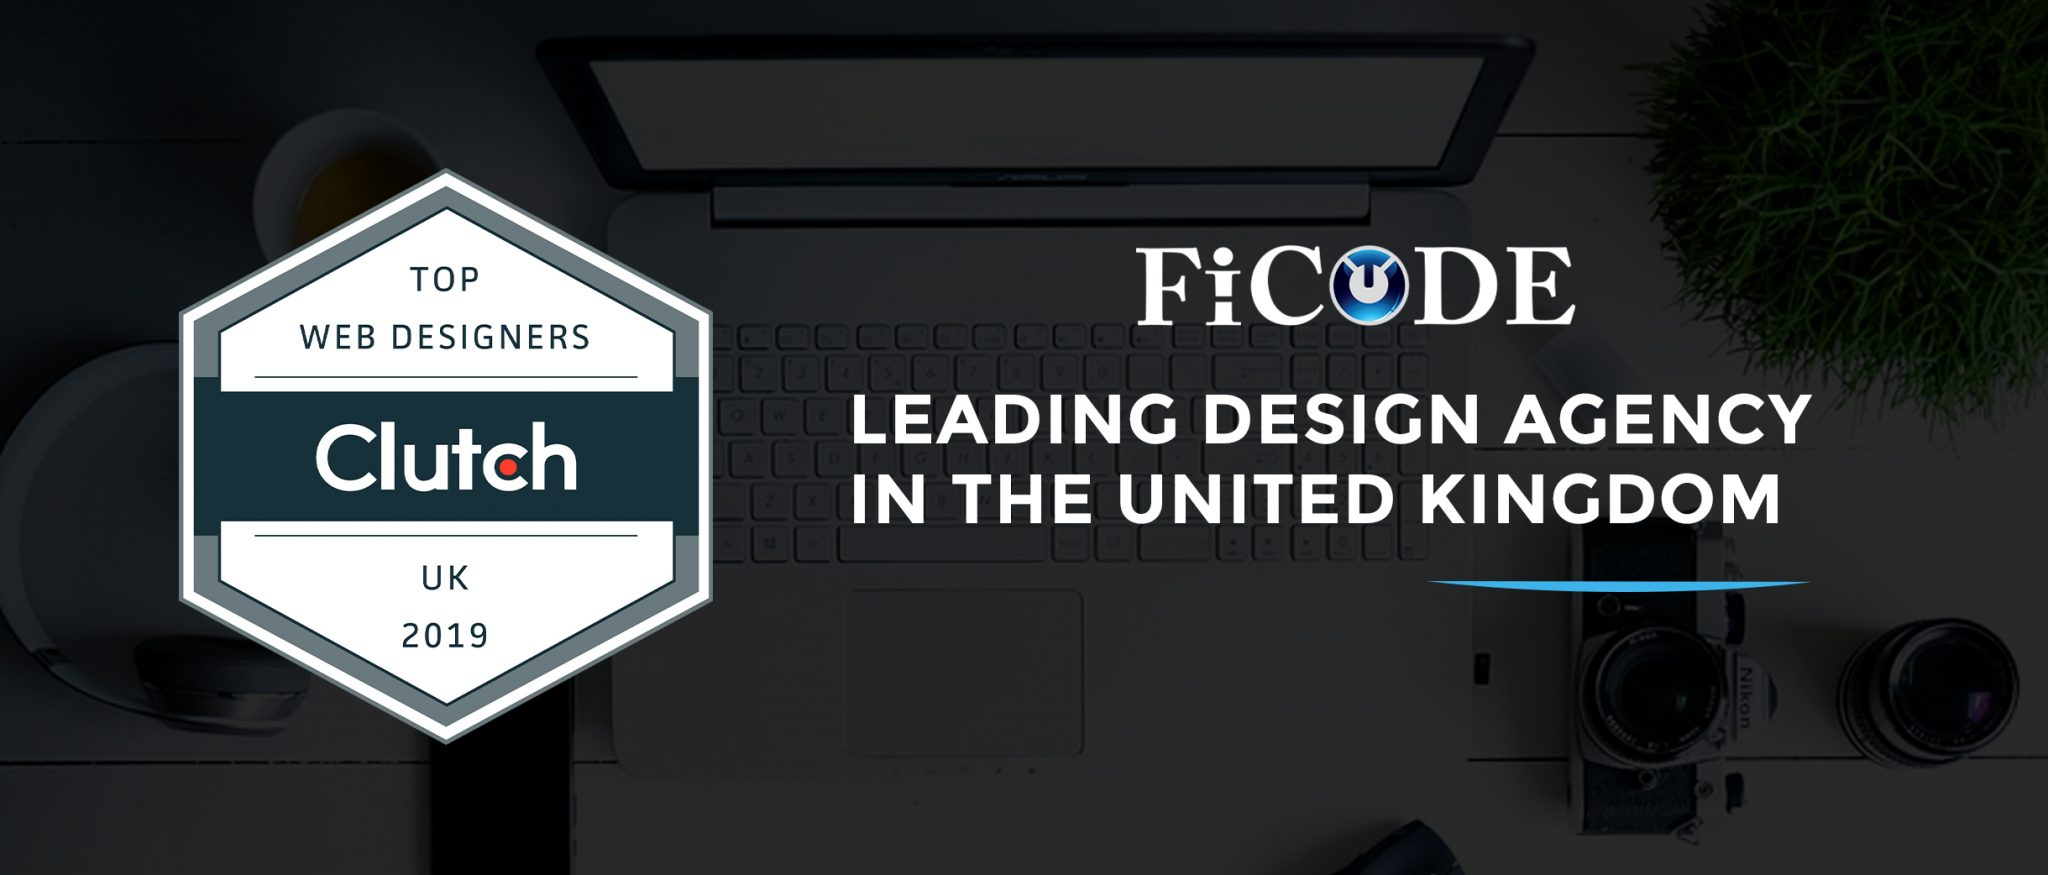 Ficode is a Leading Design Agency in the UK